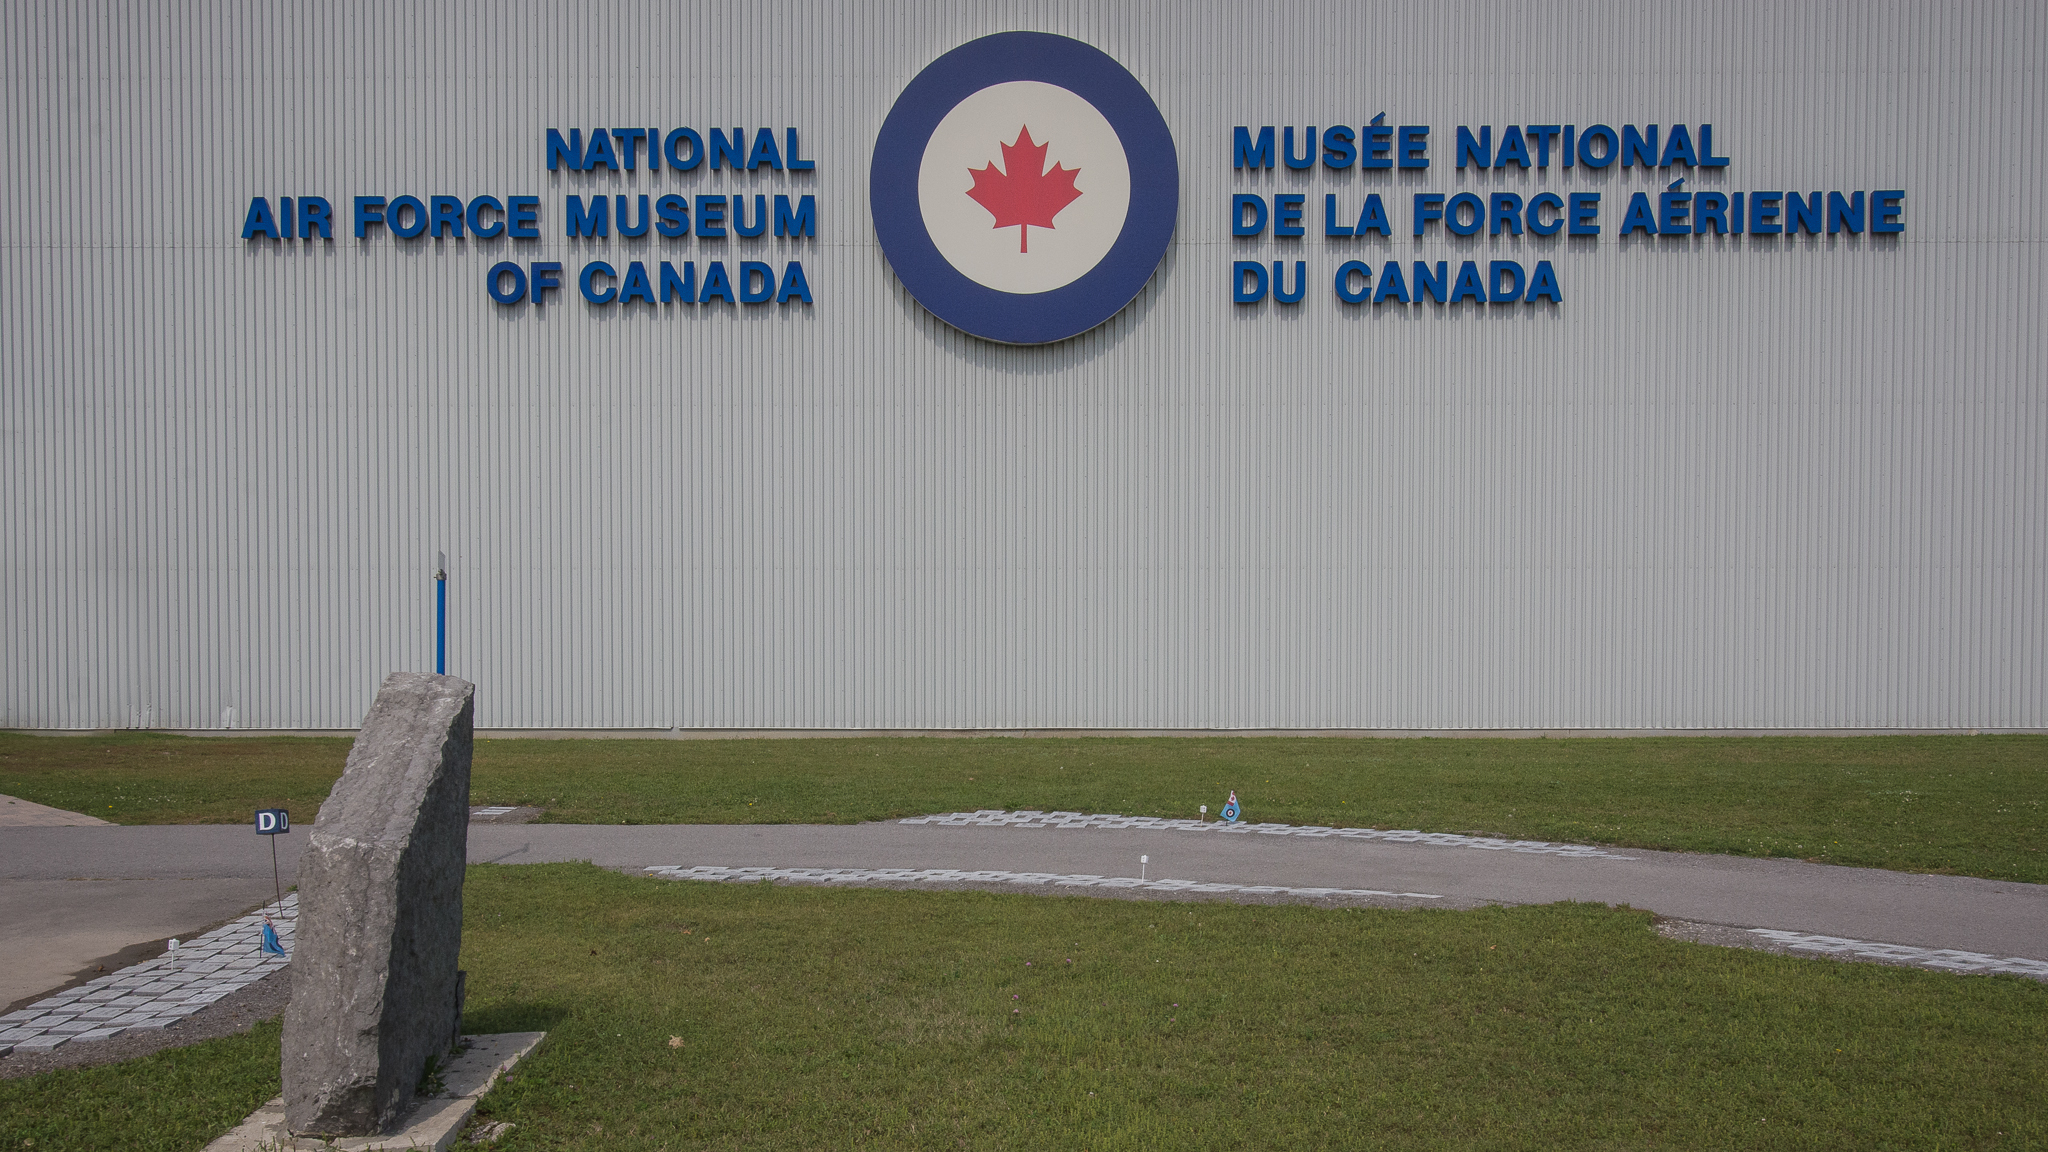 National Air Force Museum of Canada (1/800s, f/16, ISO400)